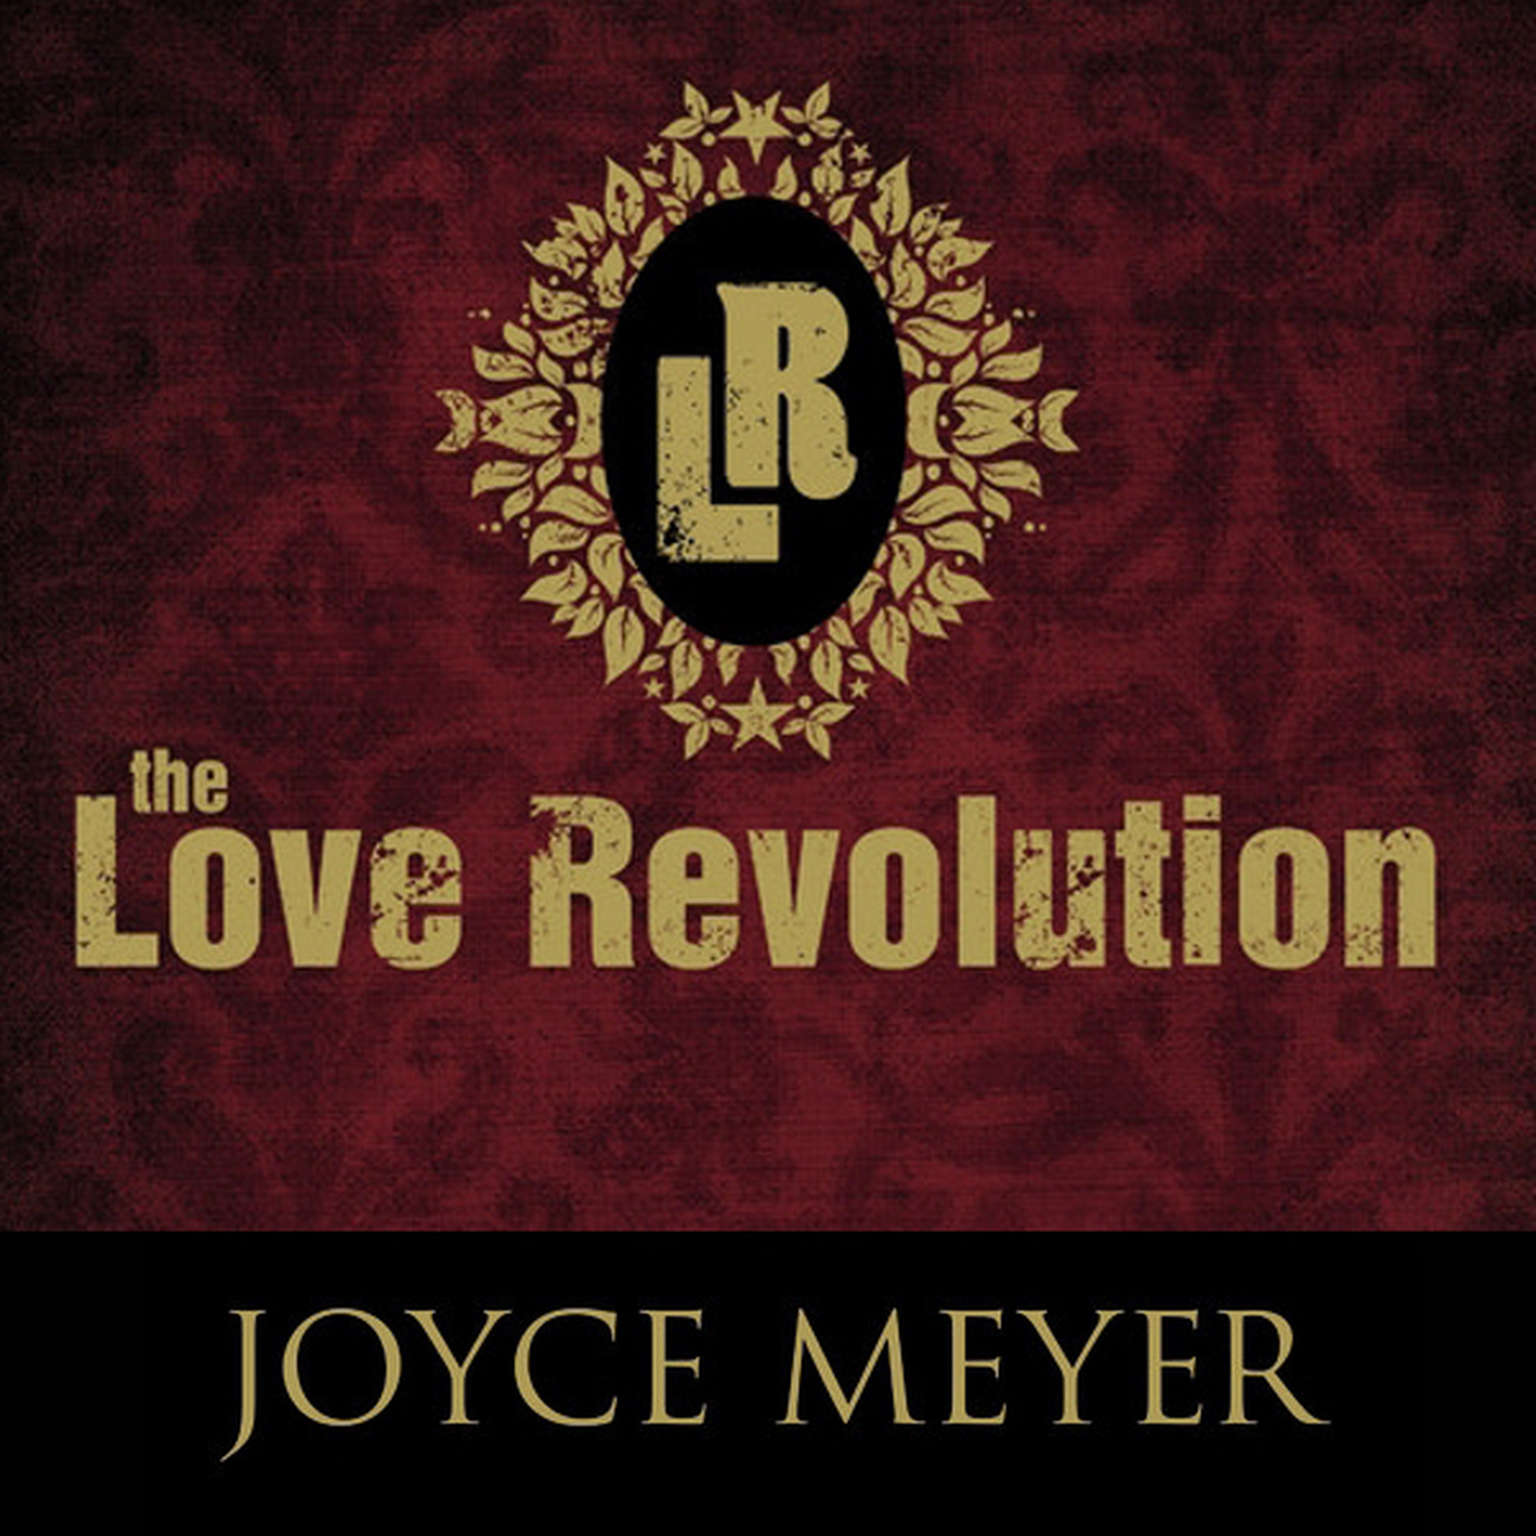 joyce meyer books in pdf format